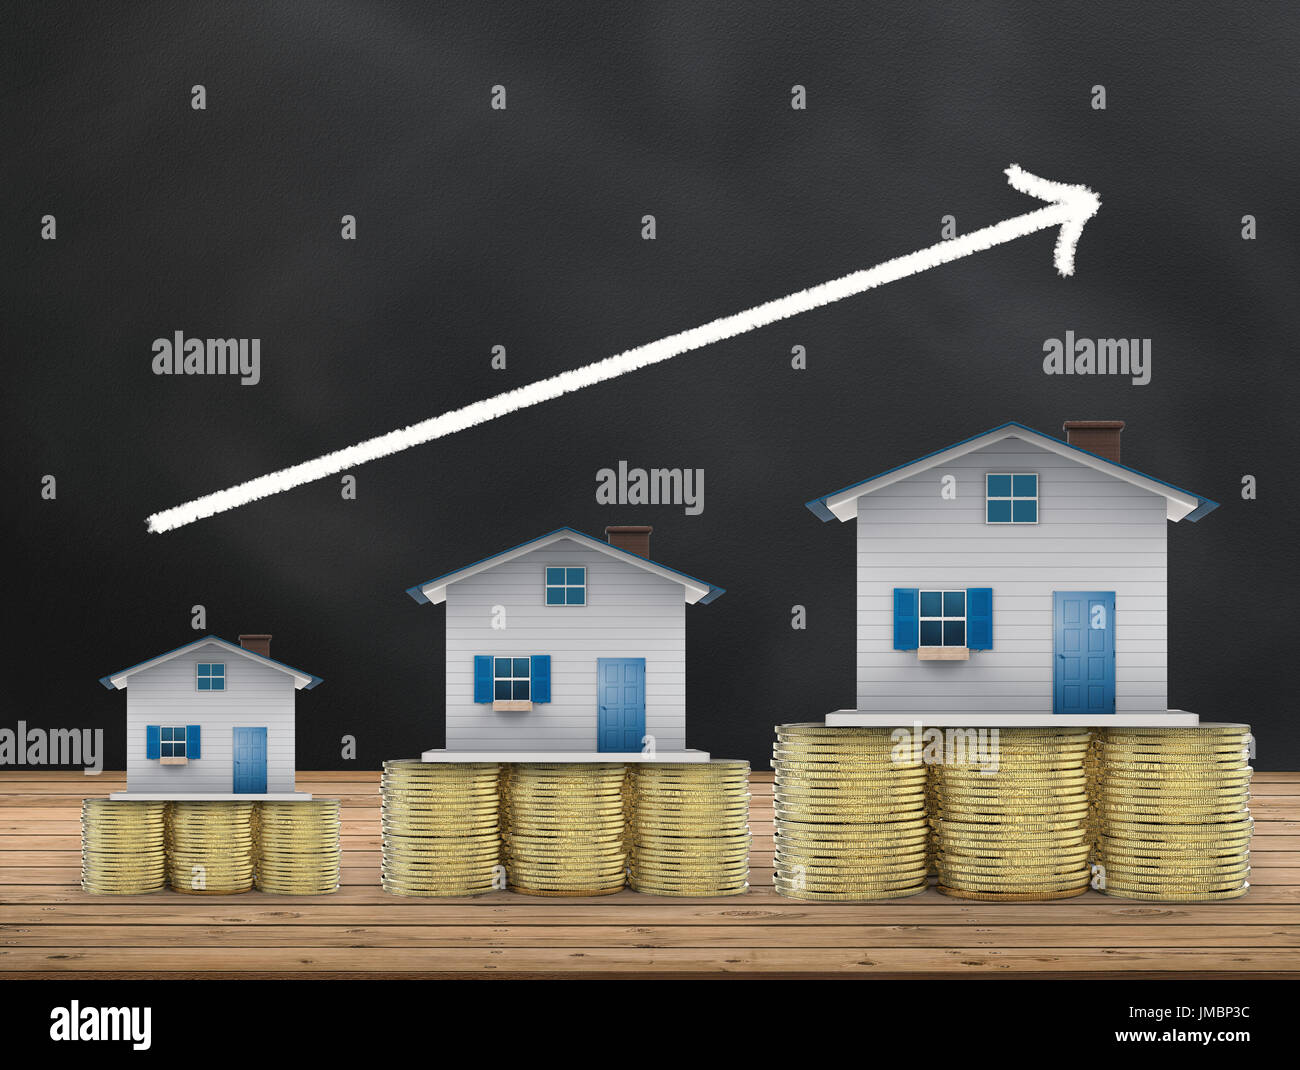 real estate investment concept with mock up houses and gold coins - Stock Image